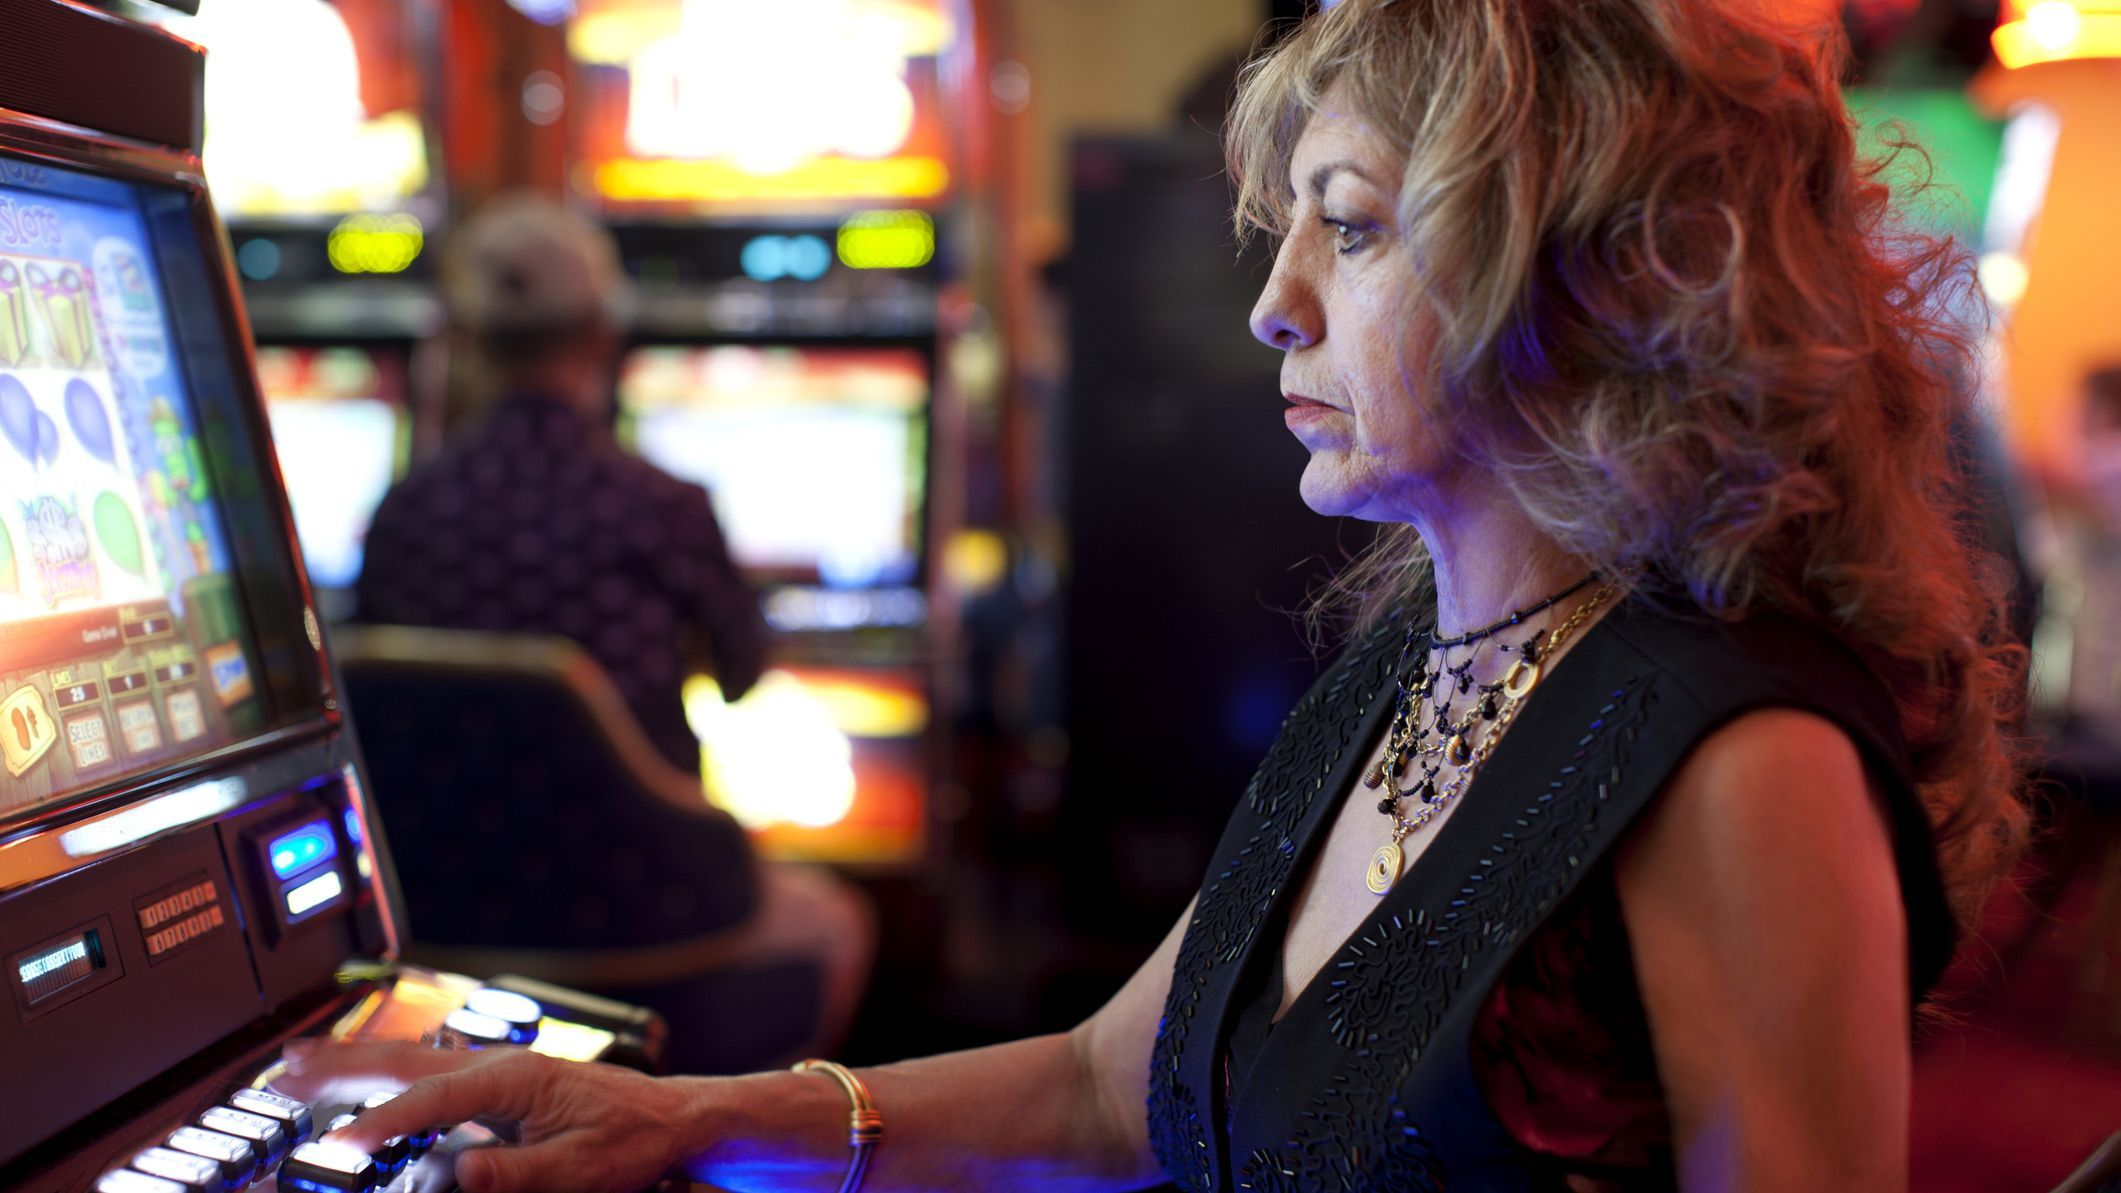 Social media, video games and slot machines: the psychology of addiction